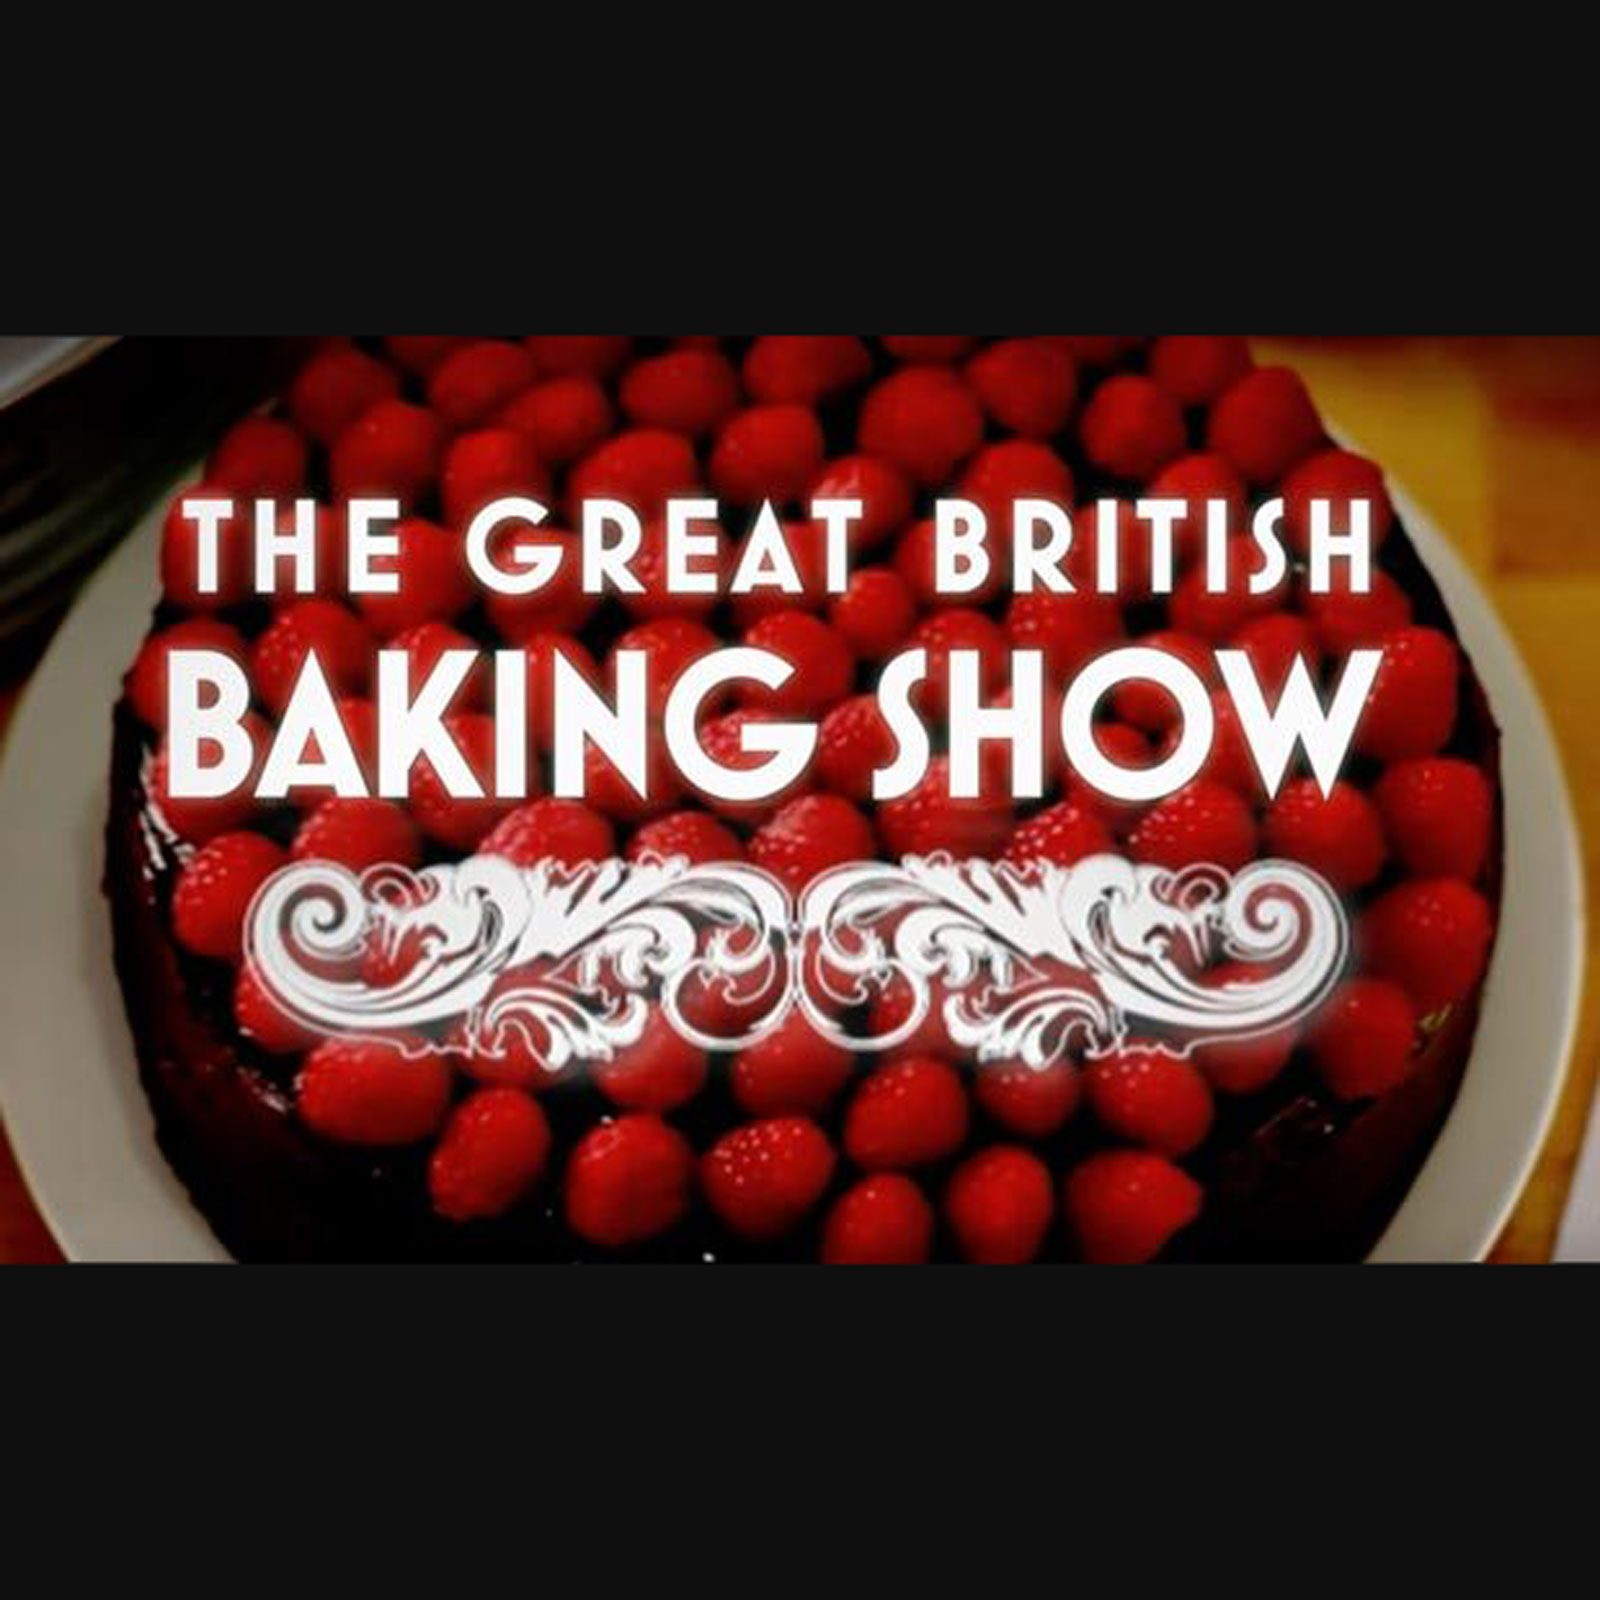 Series Review: The Great British Baking Show